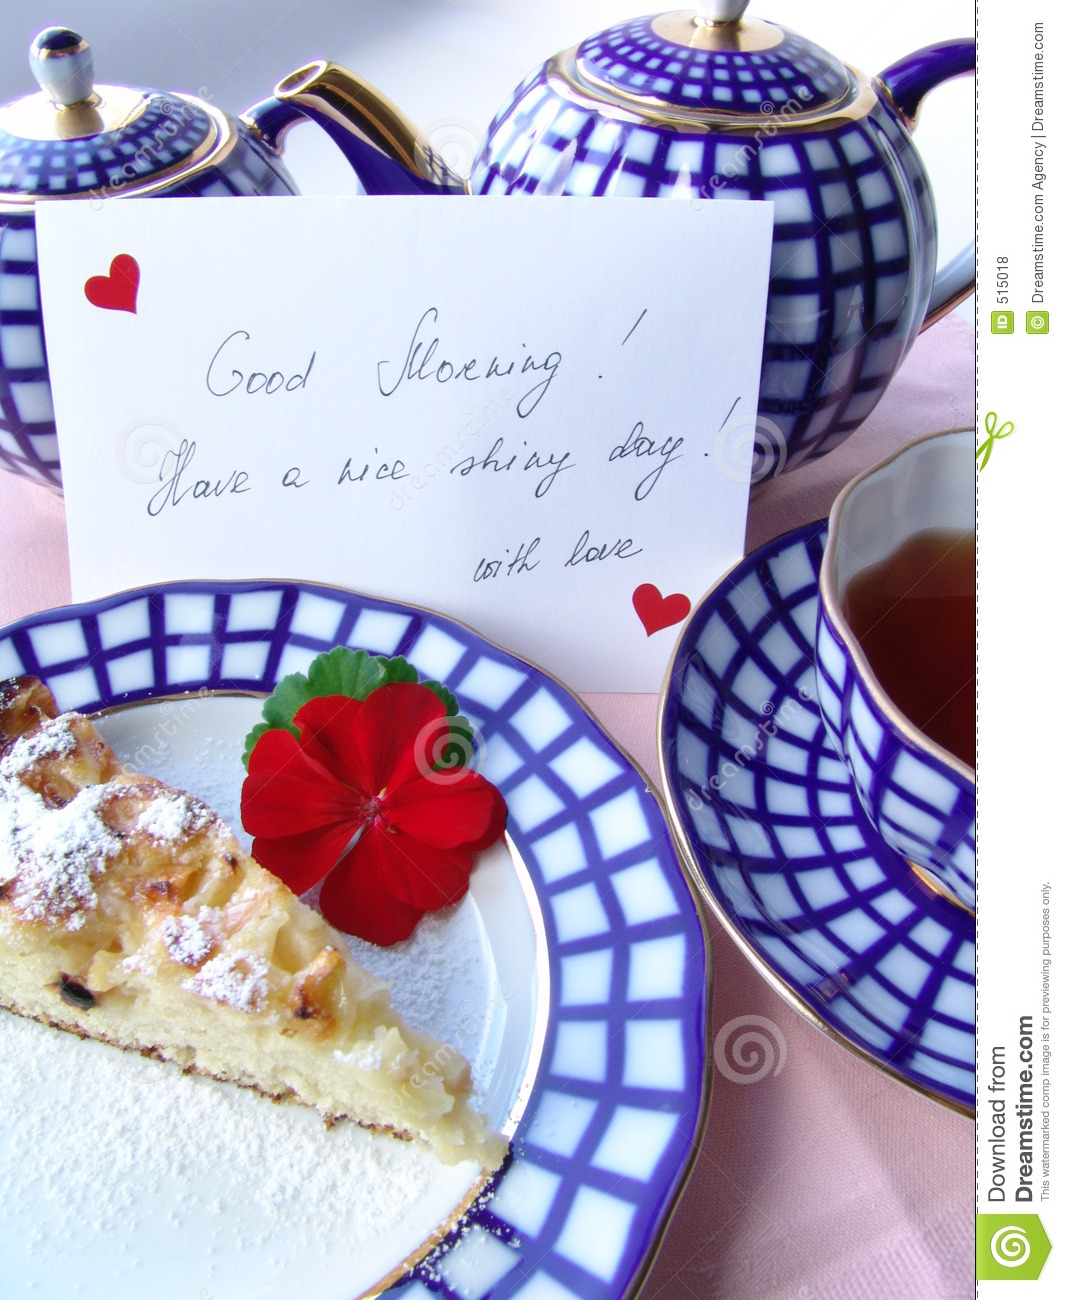 With love served breakfast